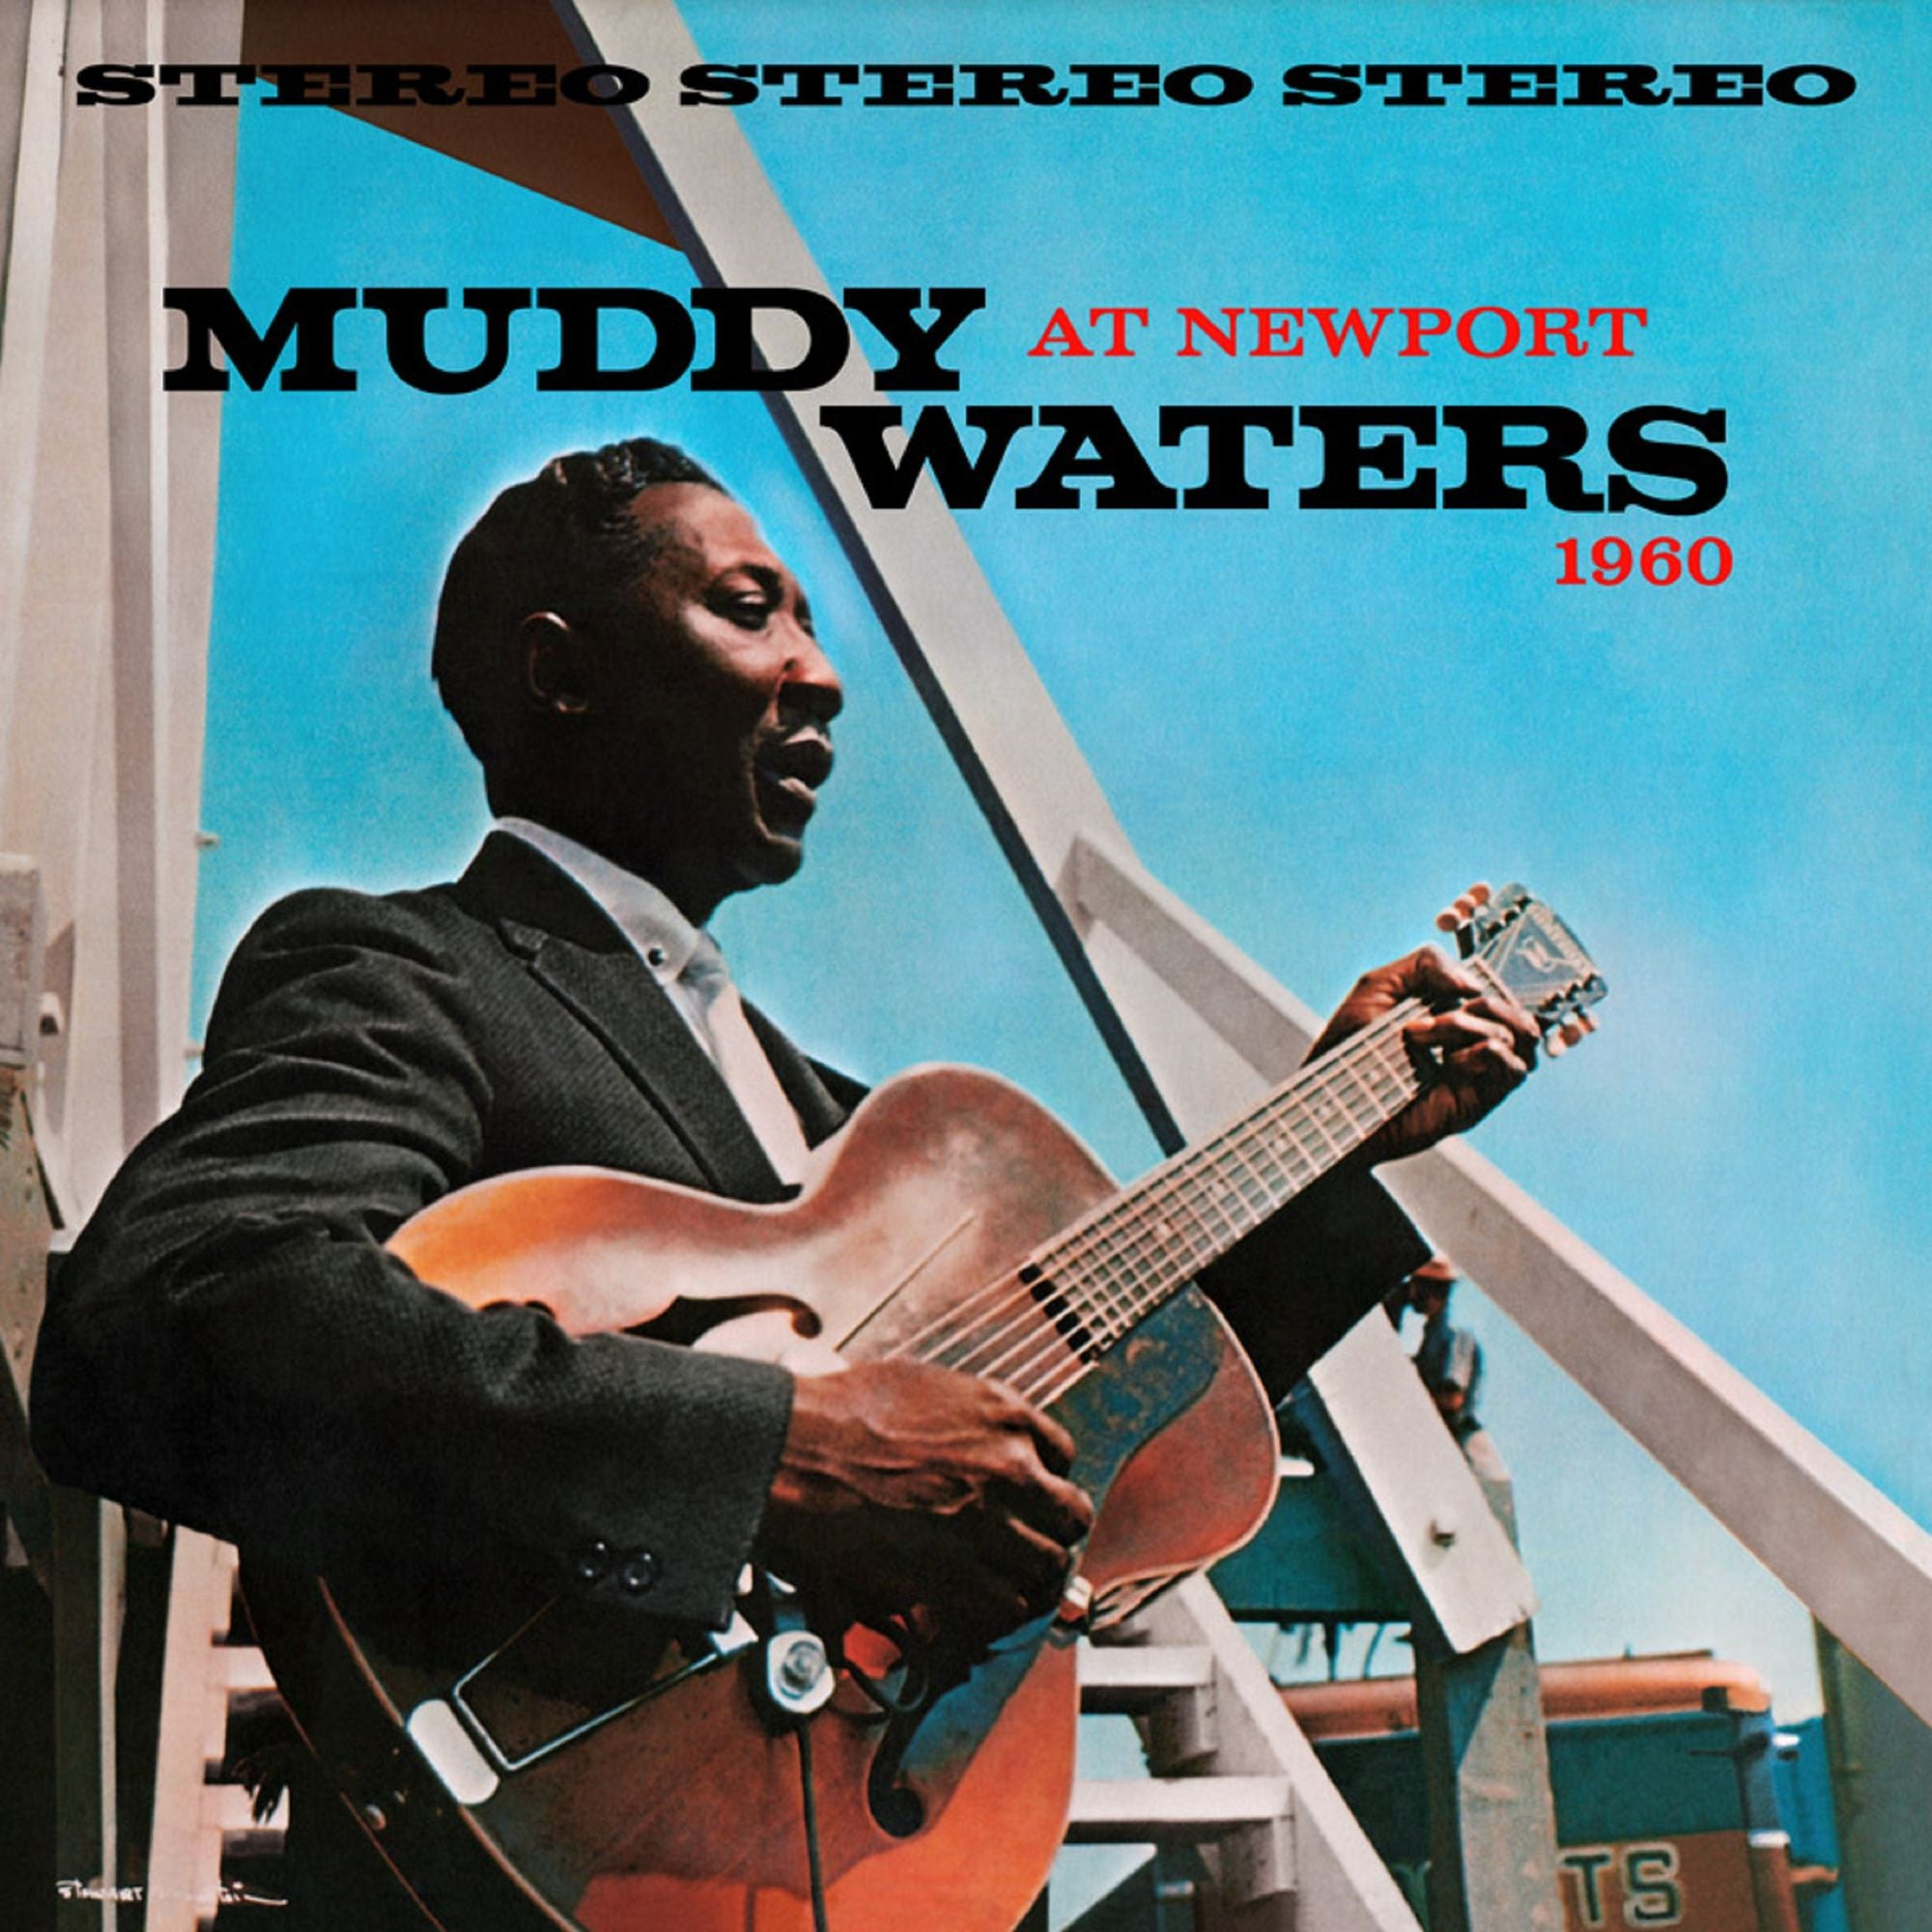 Muddy Waters ‎– Muddy Waters At Newport 1960 - New 2019 Record LP 180 gram Translucent Blue Vinyl  Reissue - Chicago Blues